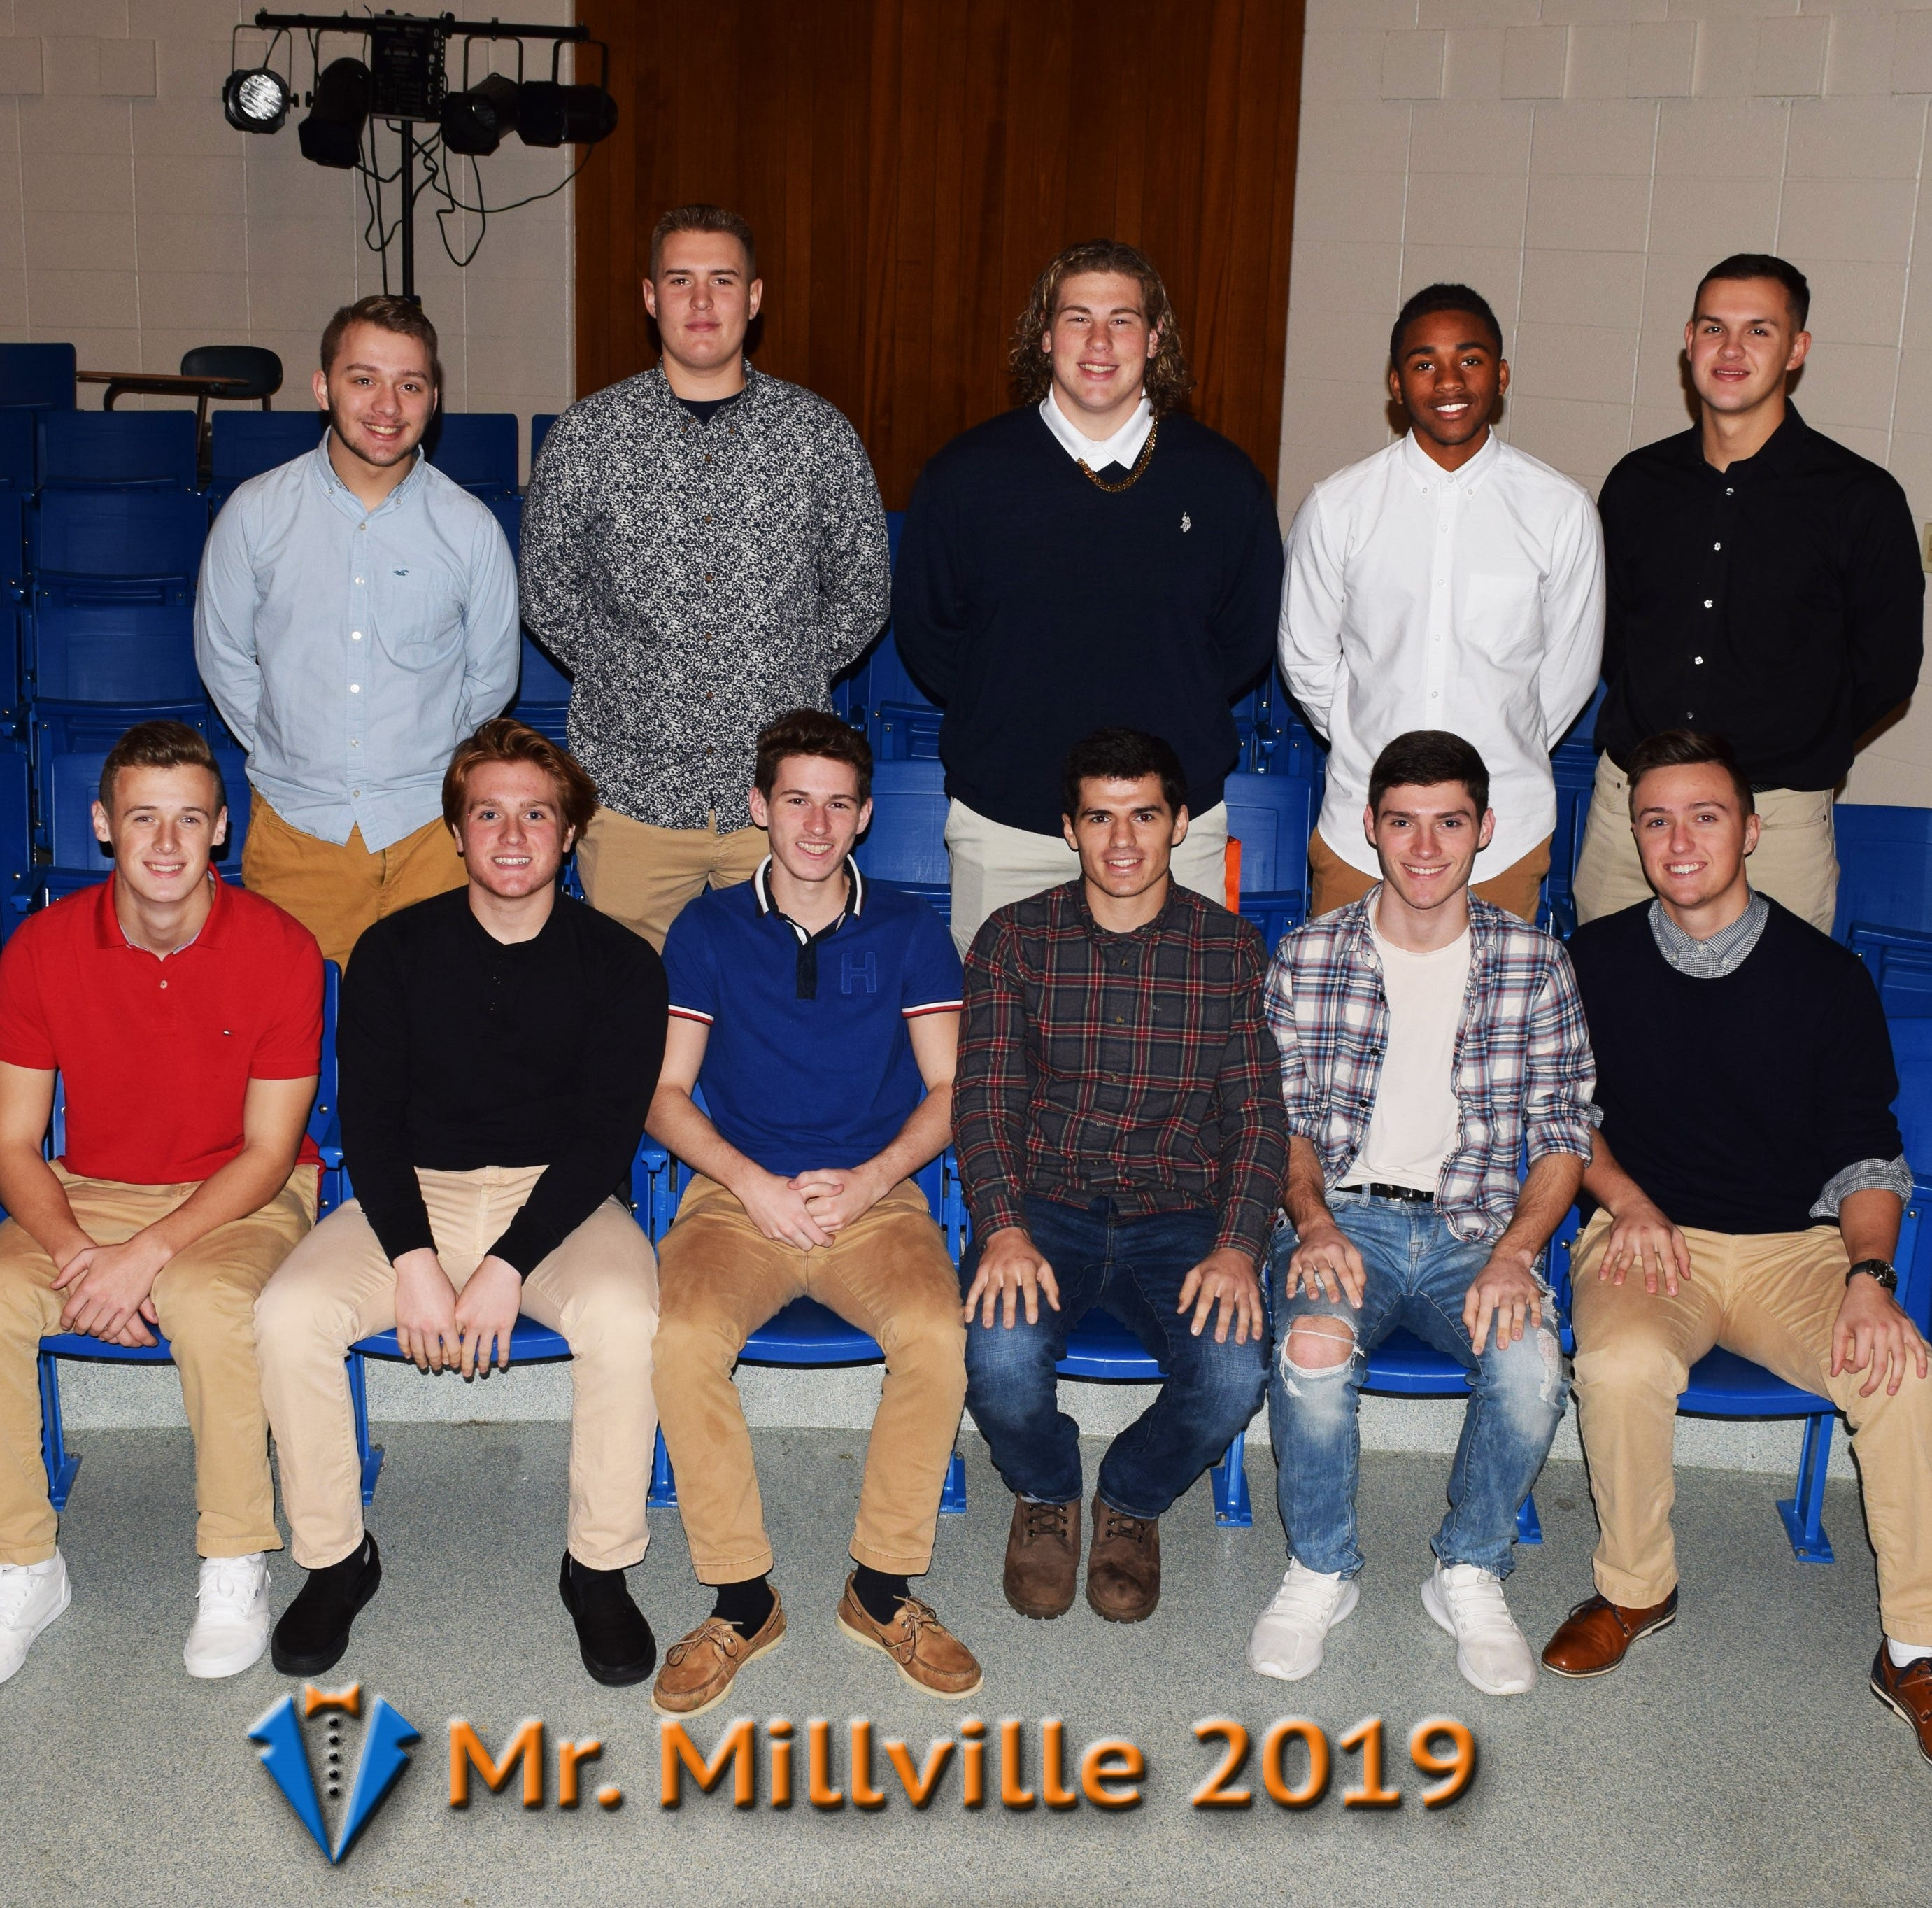 Contestants announced for Millville High School's Mr. Millville contest